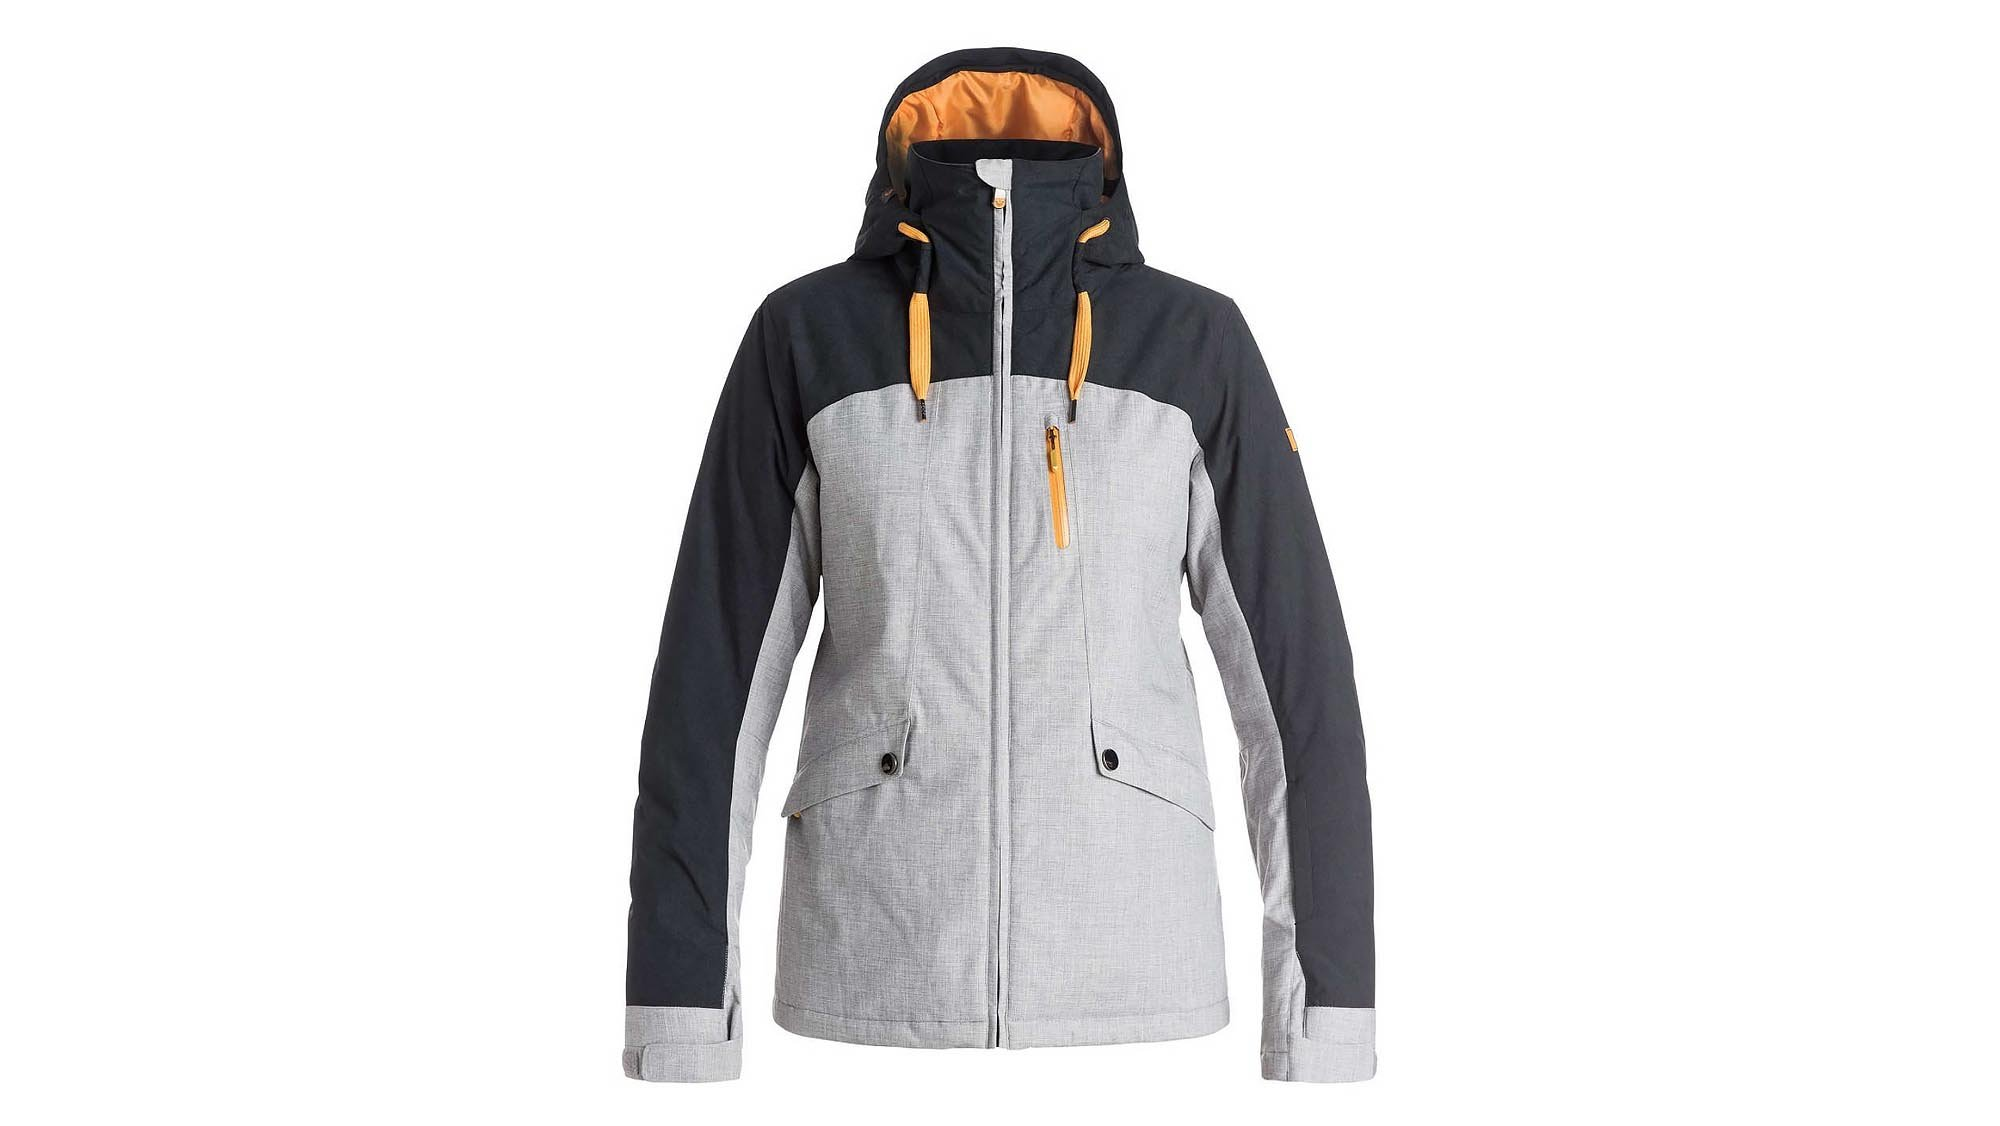 Roxy s stylish Wildlife jacket packs in all the design features you d want  in a ski outer 3f70fc9c8